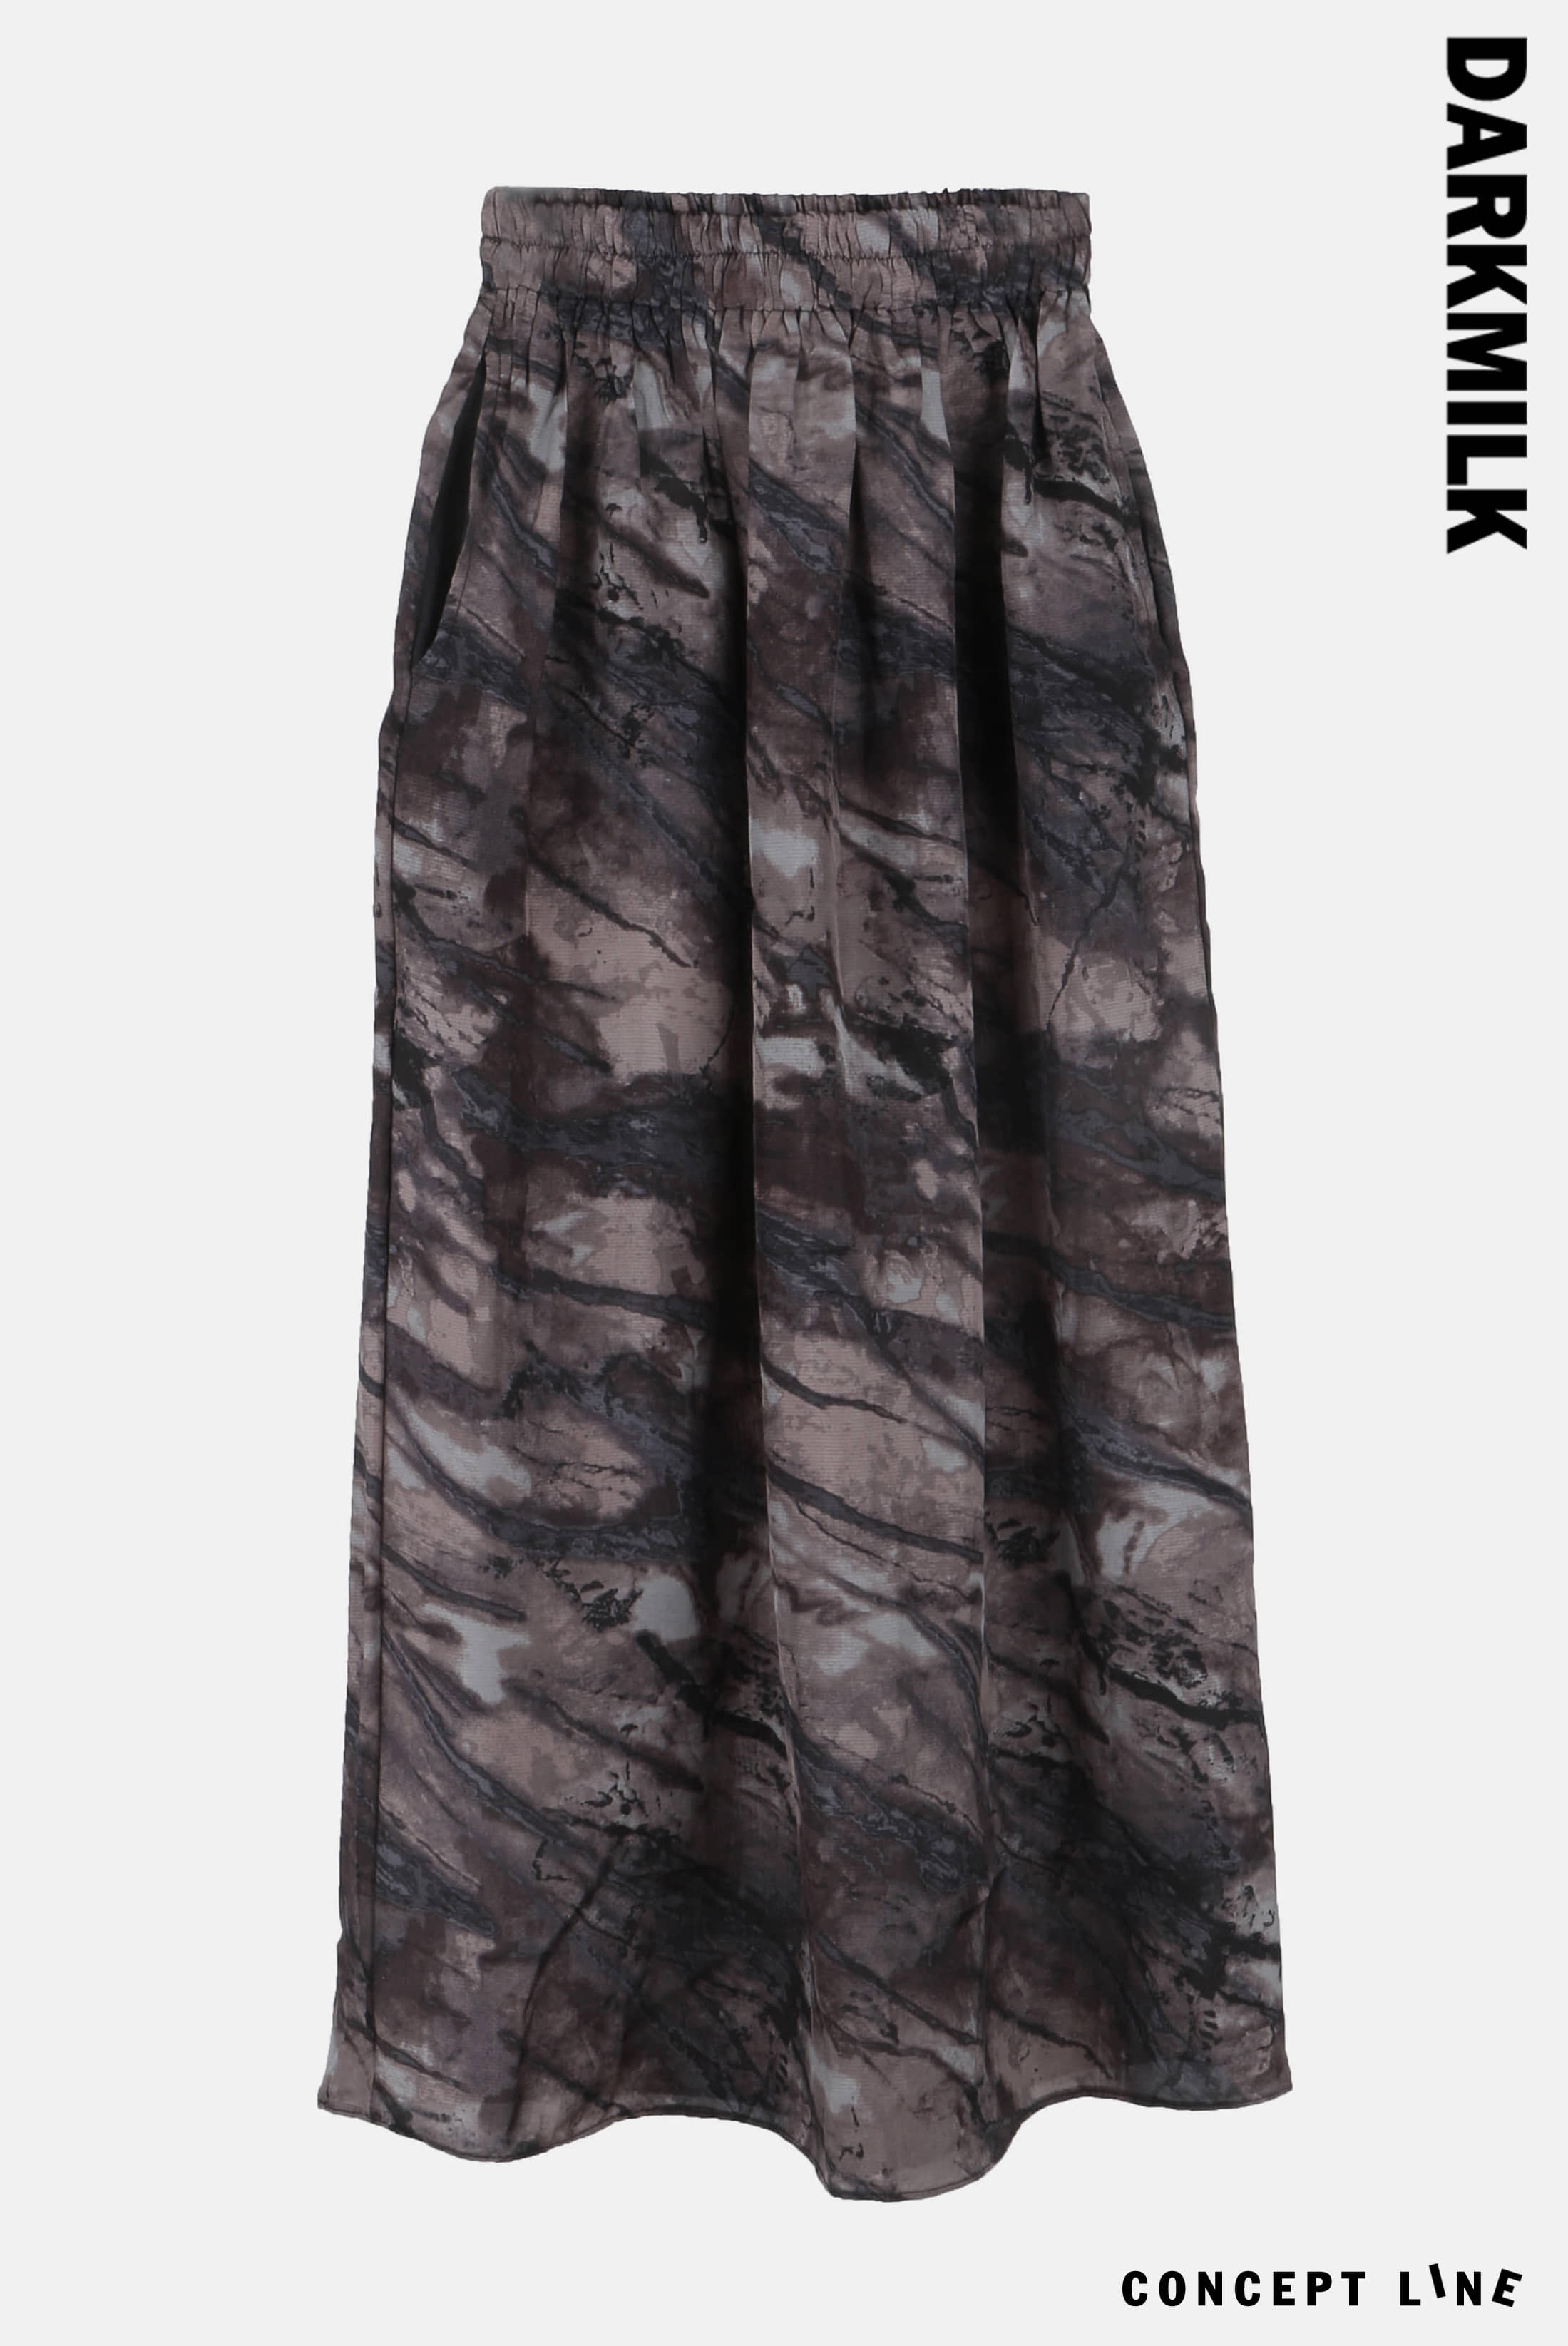 [Concept] Stone_Printed Long_Skirt